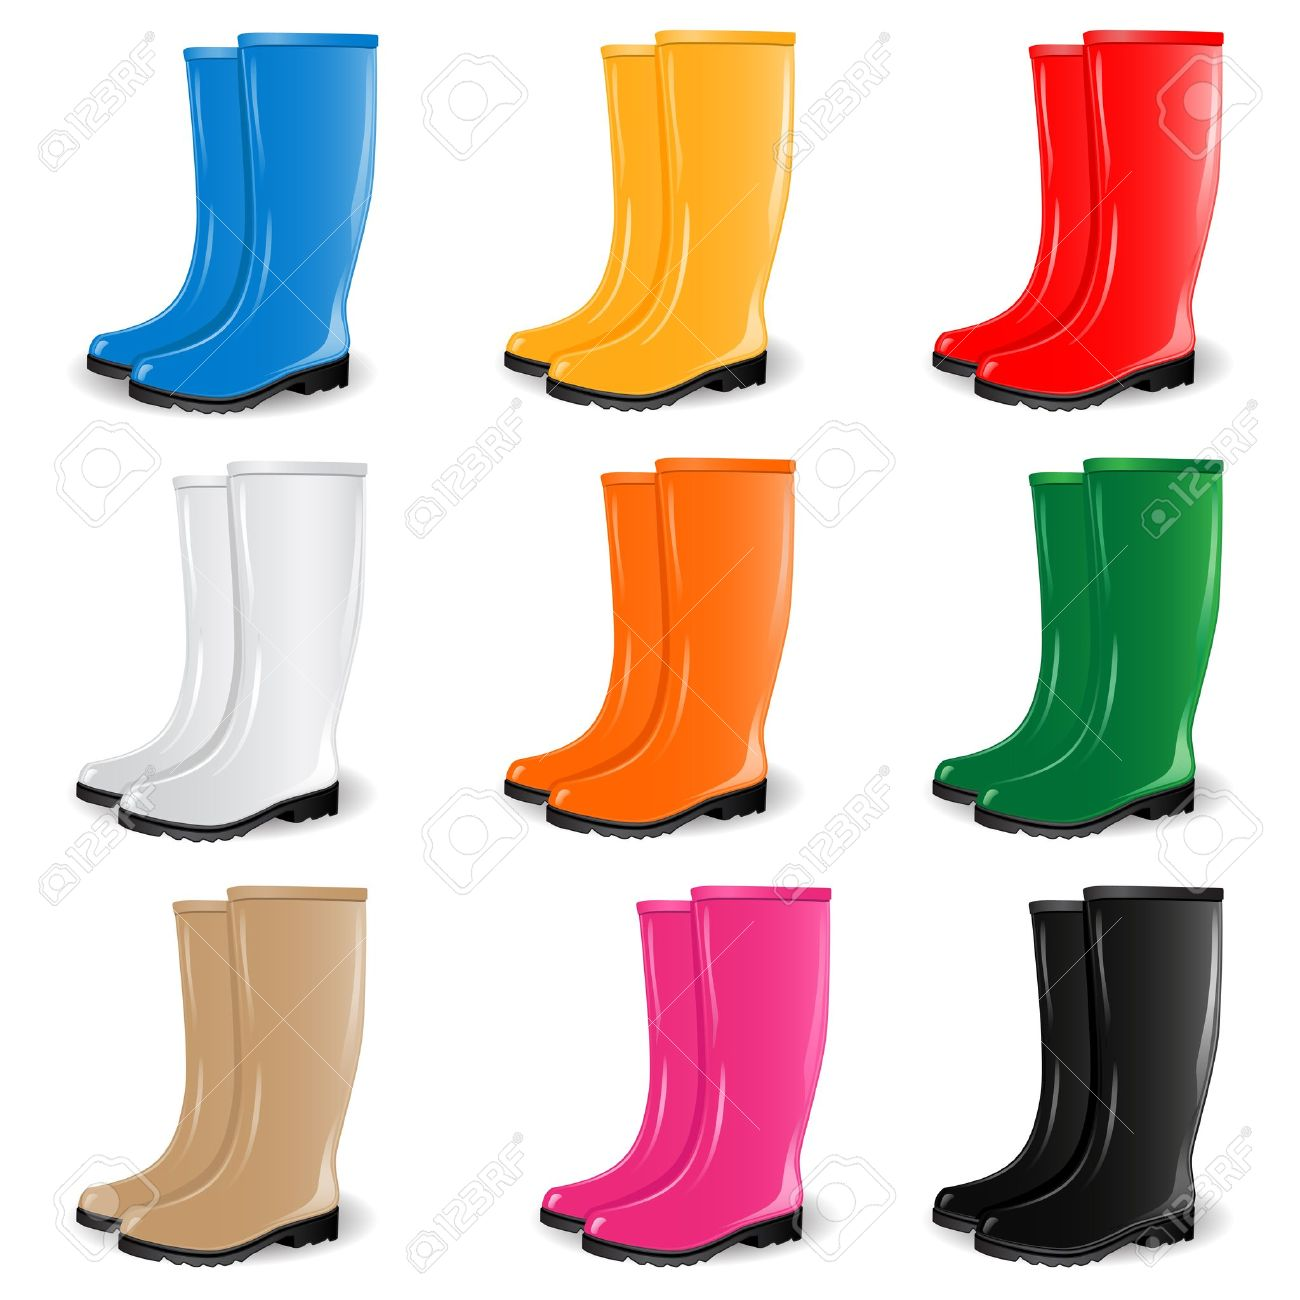 4,832 Rubber Boots Cliparts, Stock Vector And Royalty Free Rubber.